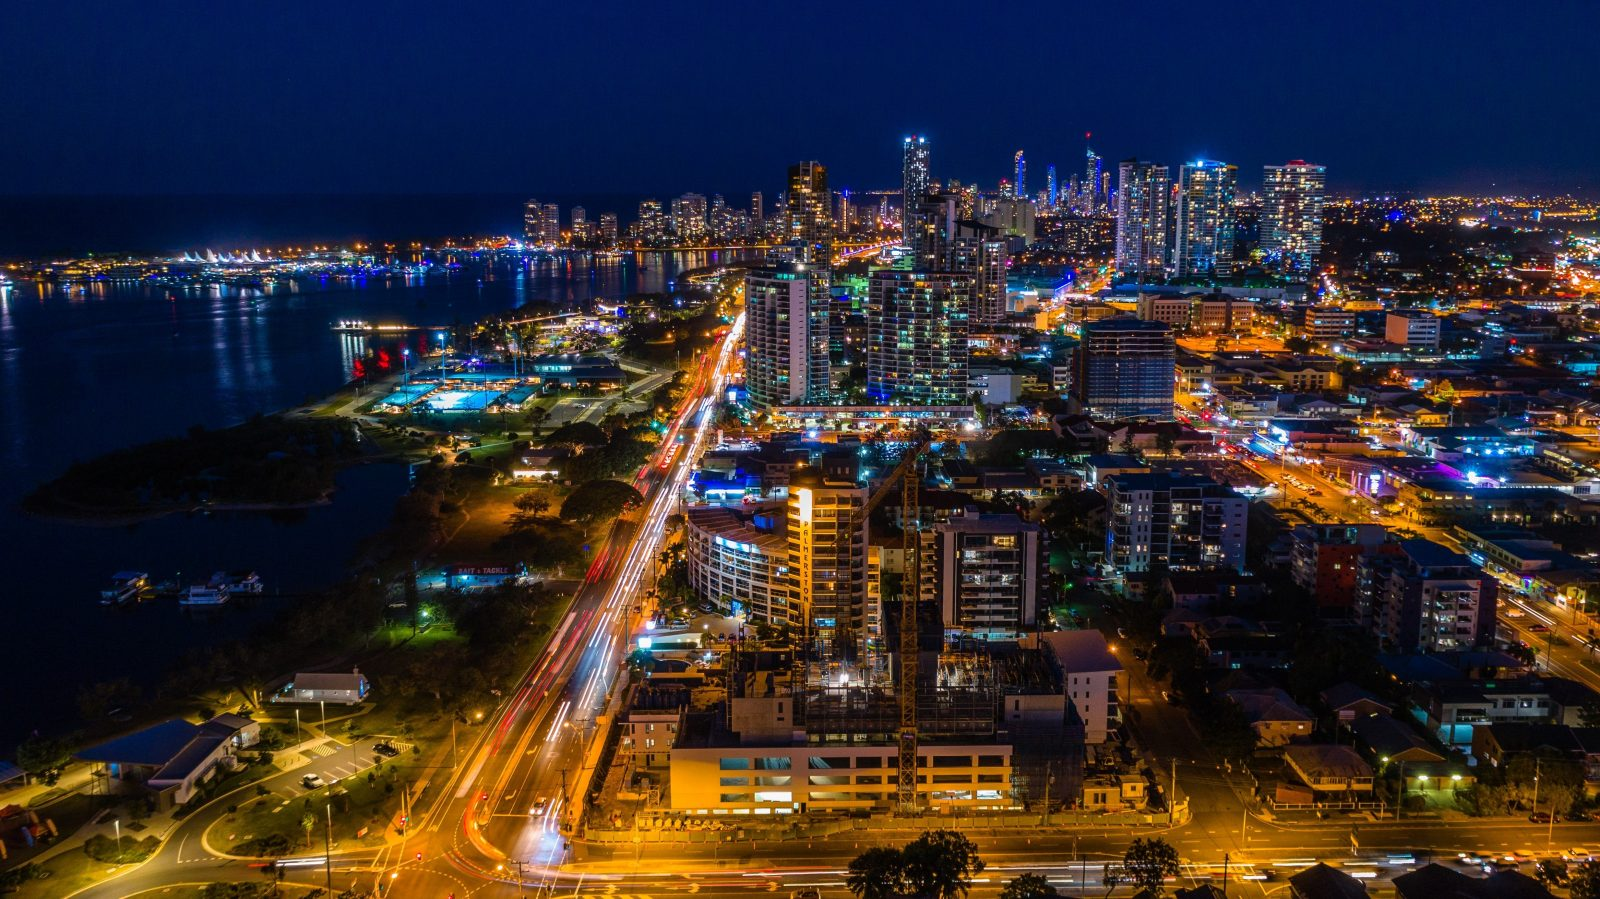 Night view from Sky Broadwater